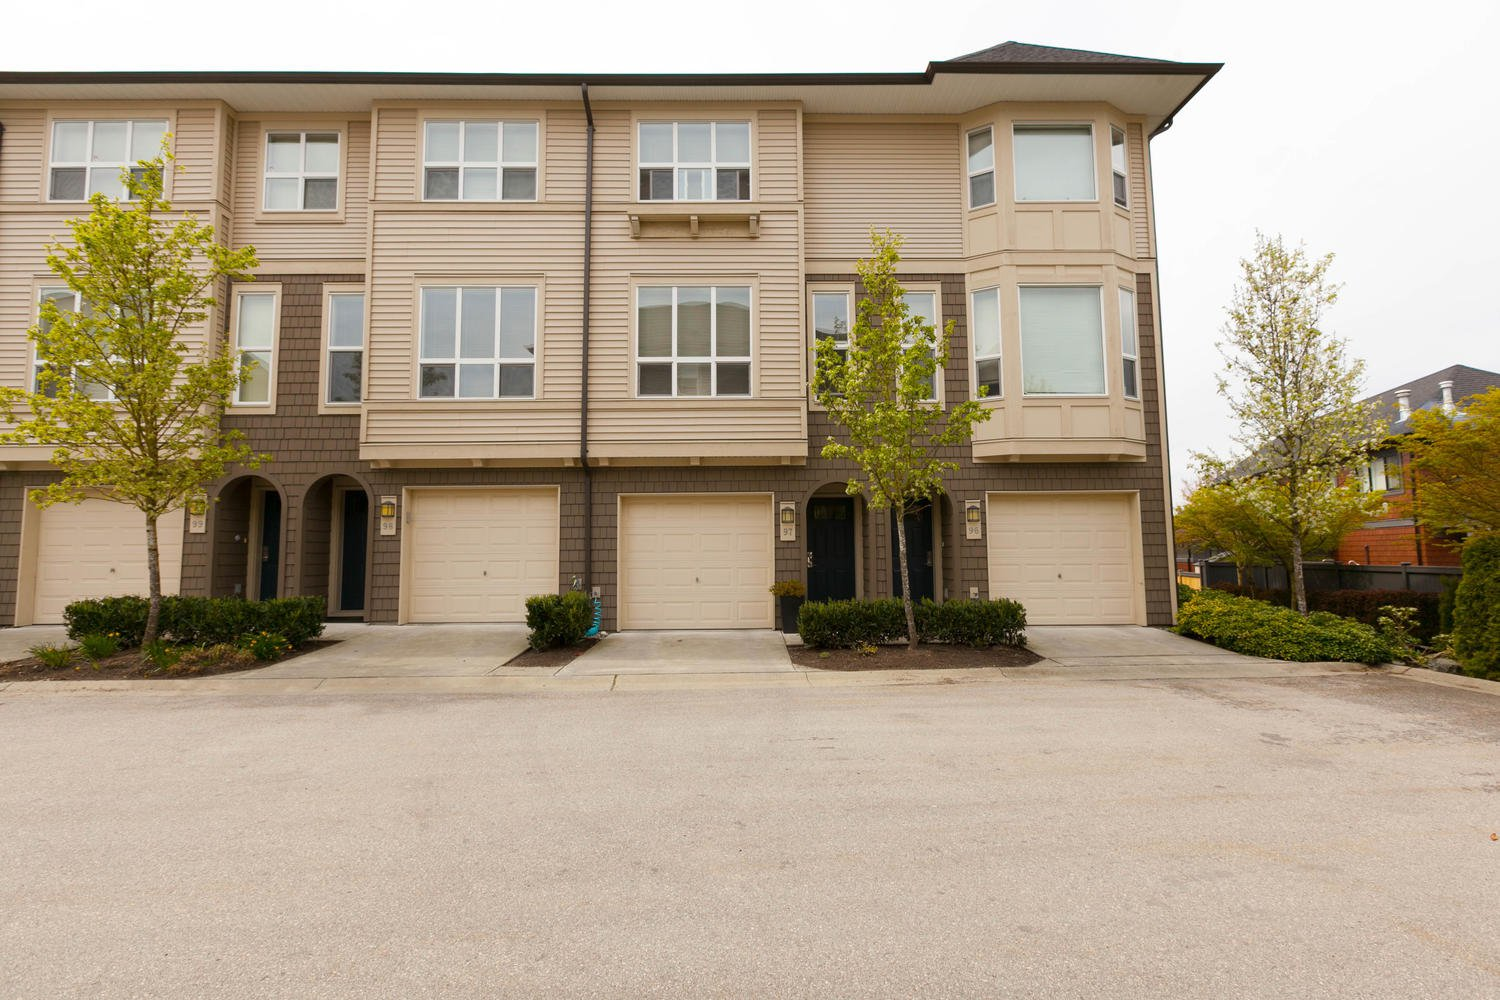 "Photo 1: Photos: 97 7938 209 Street in Langley: Willoughby Heights Townhouse for sale in ""Red Maple Park"" : MLS®# R2260950"